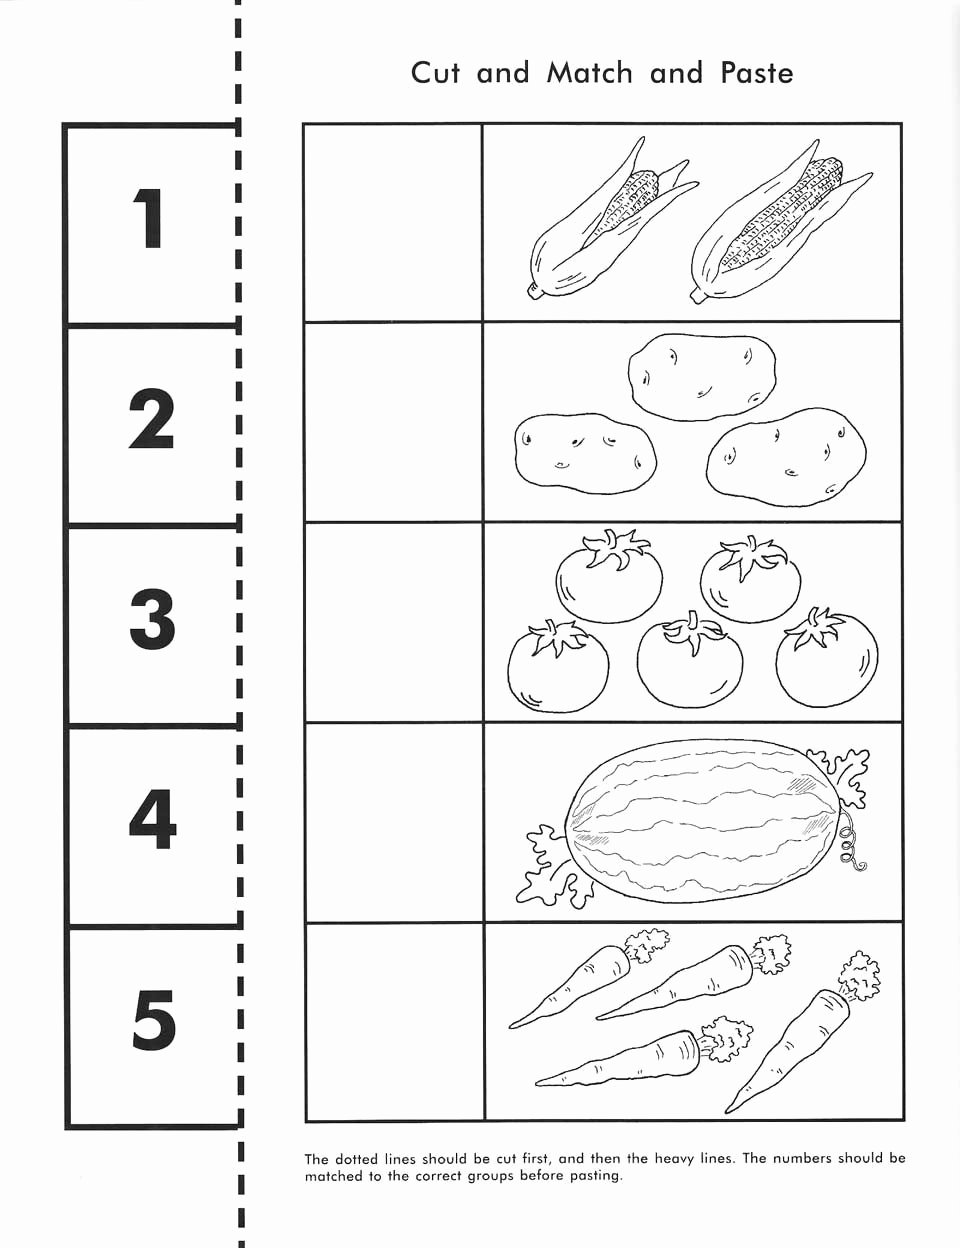 Counting Cut and Paste Worksheets Printable Home Education Journal Rod & Staff Preschool Workbooks